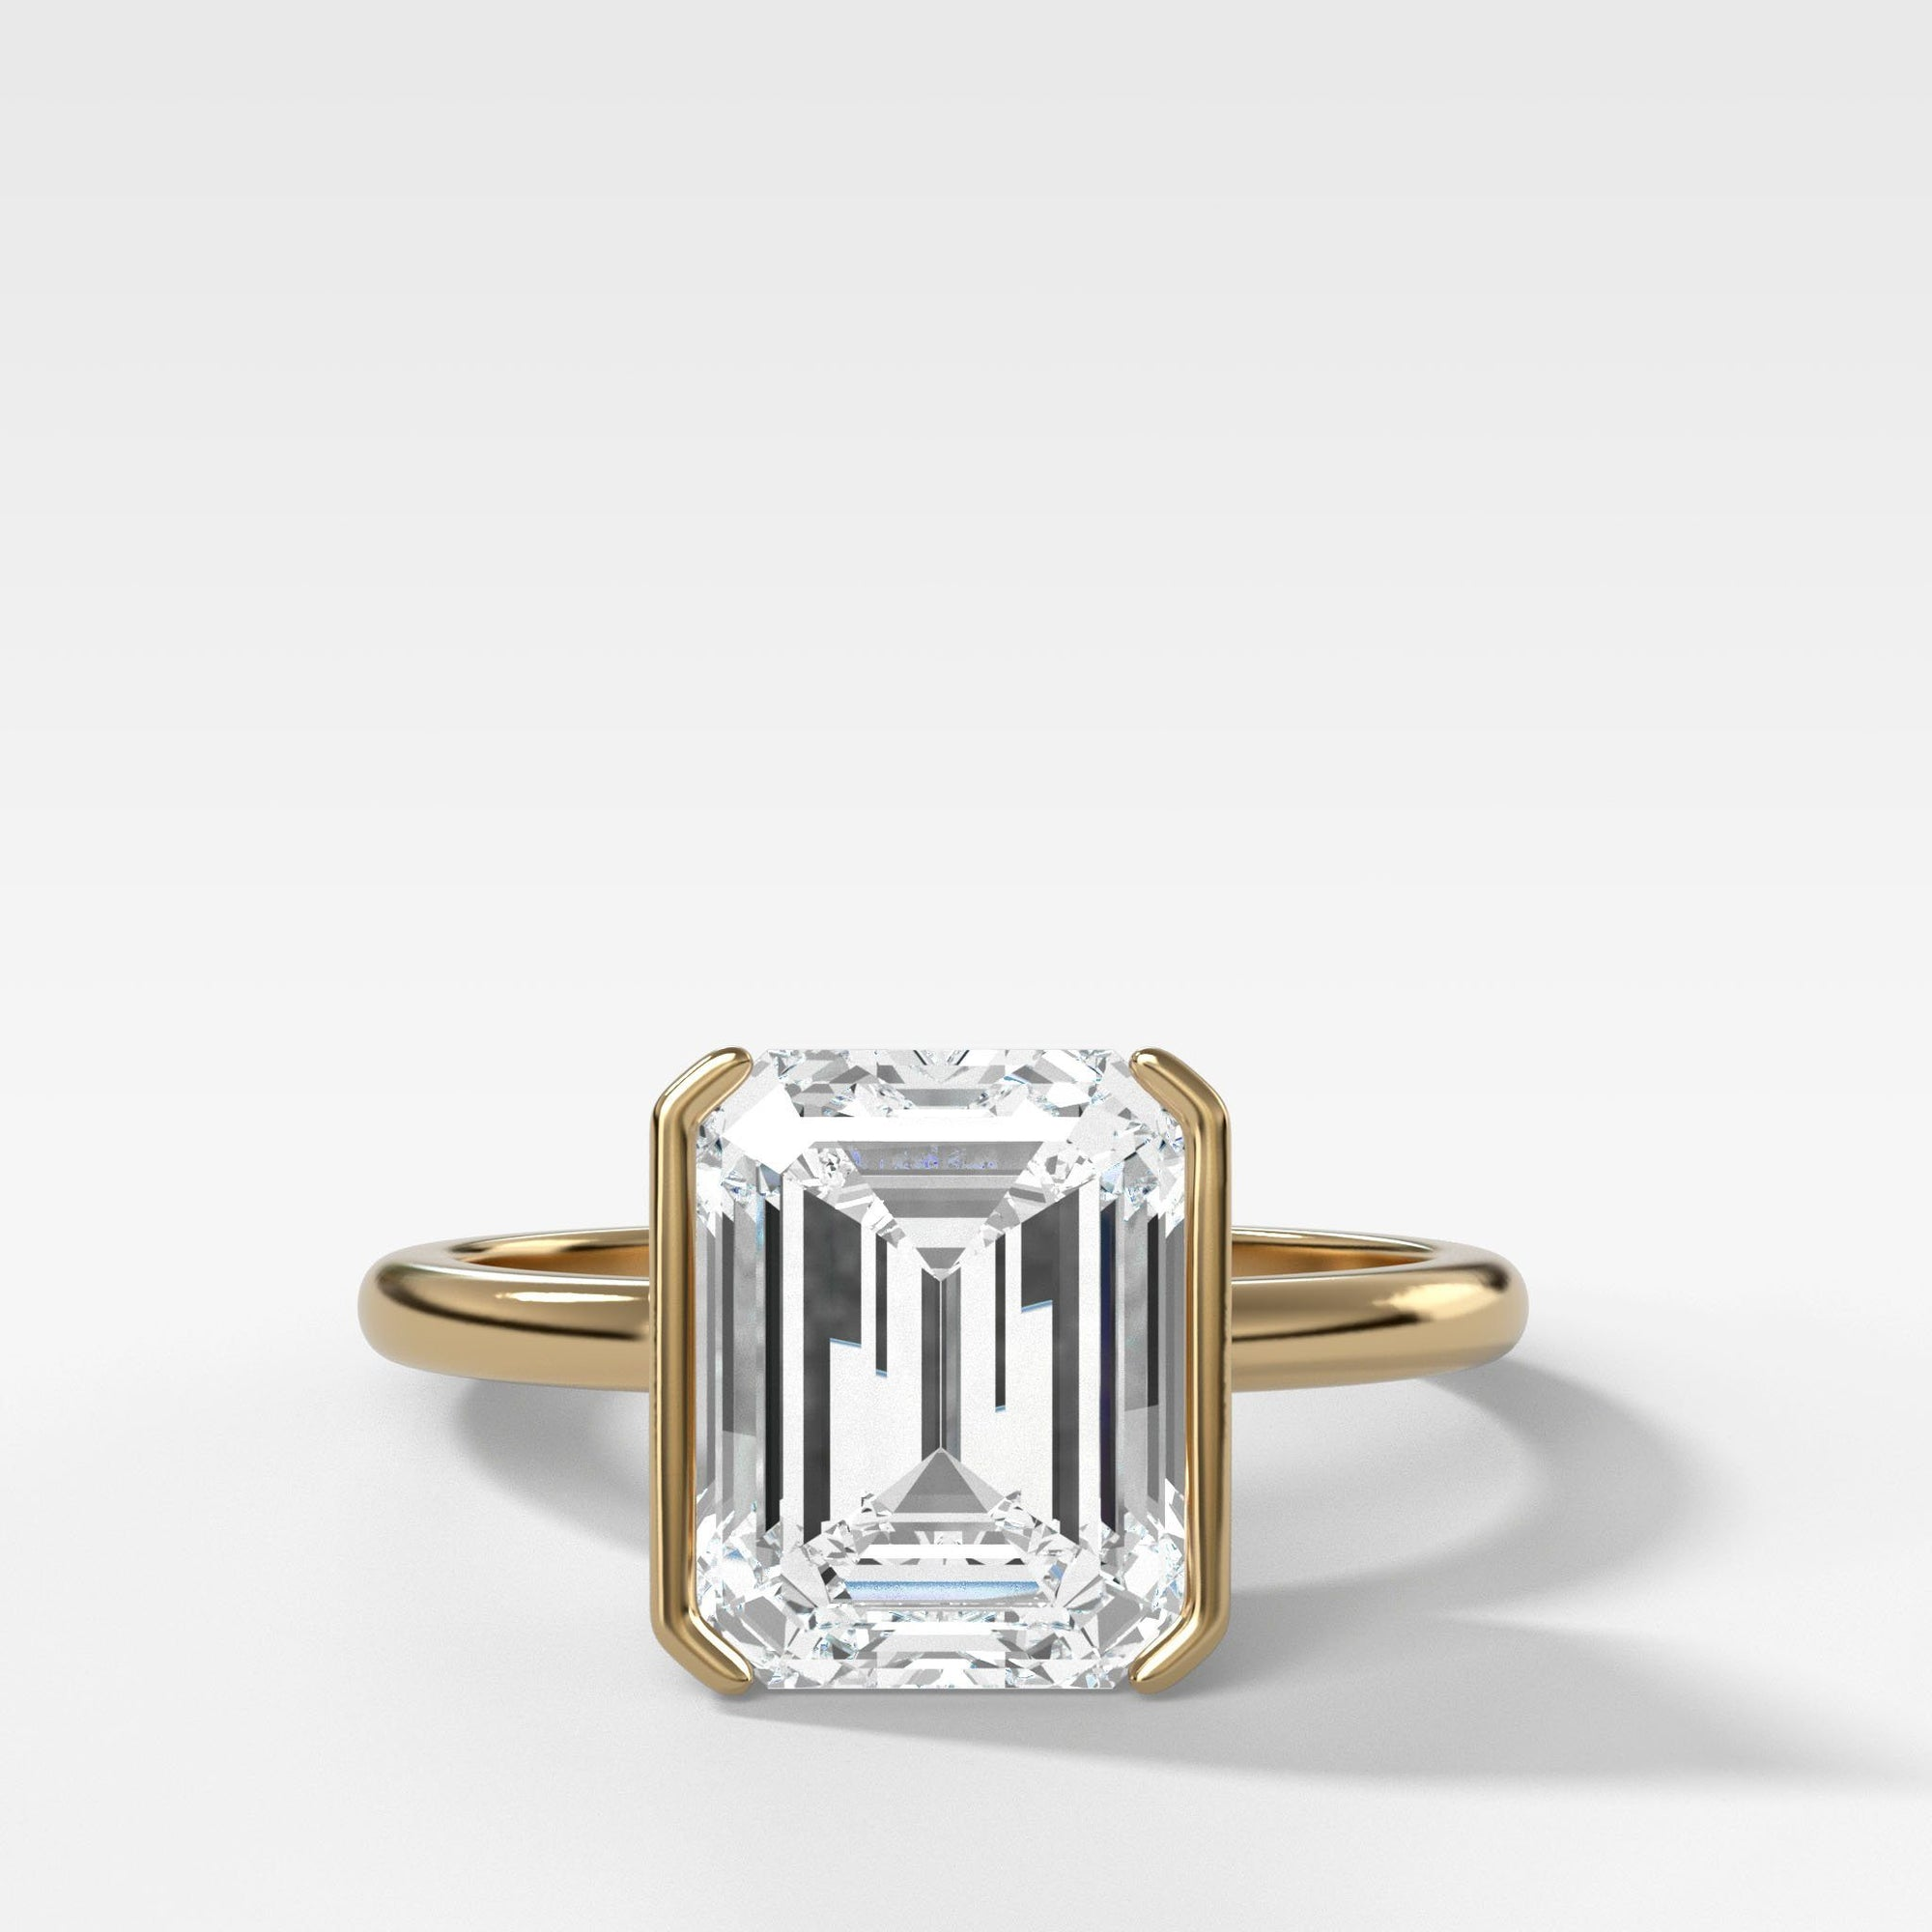 North South Half Bezel Solitaire Engagement Ring With Emerald Cut in Yellow Gold by Good Stone